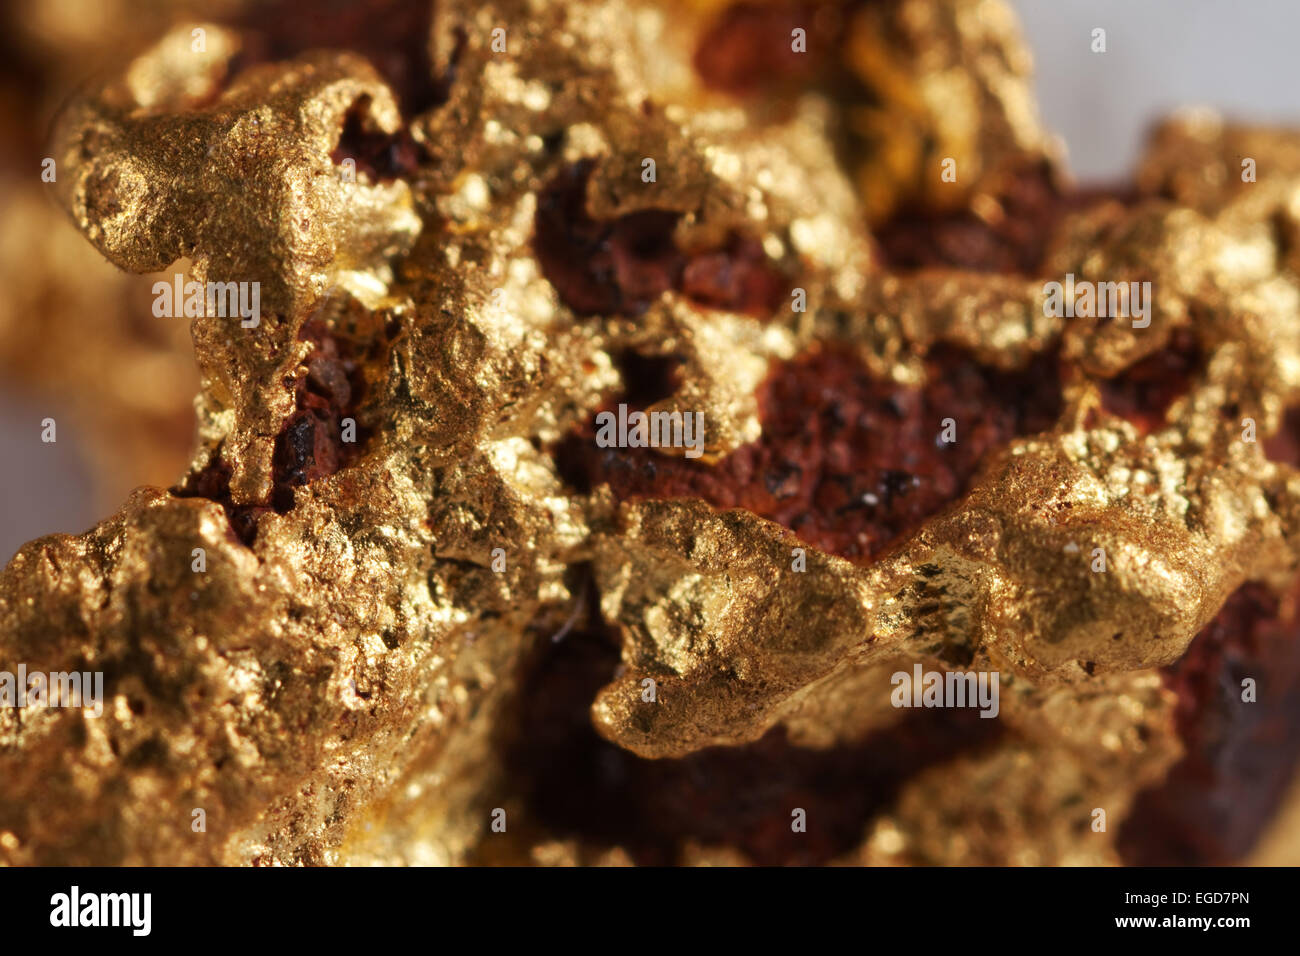 Raw Gold Nugget Stock Photos & Raw Gold Nugget Stock Images - Alamy